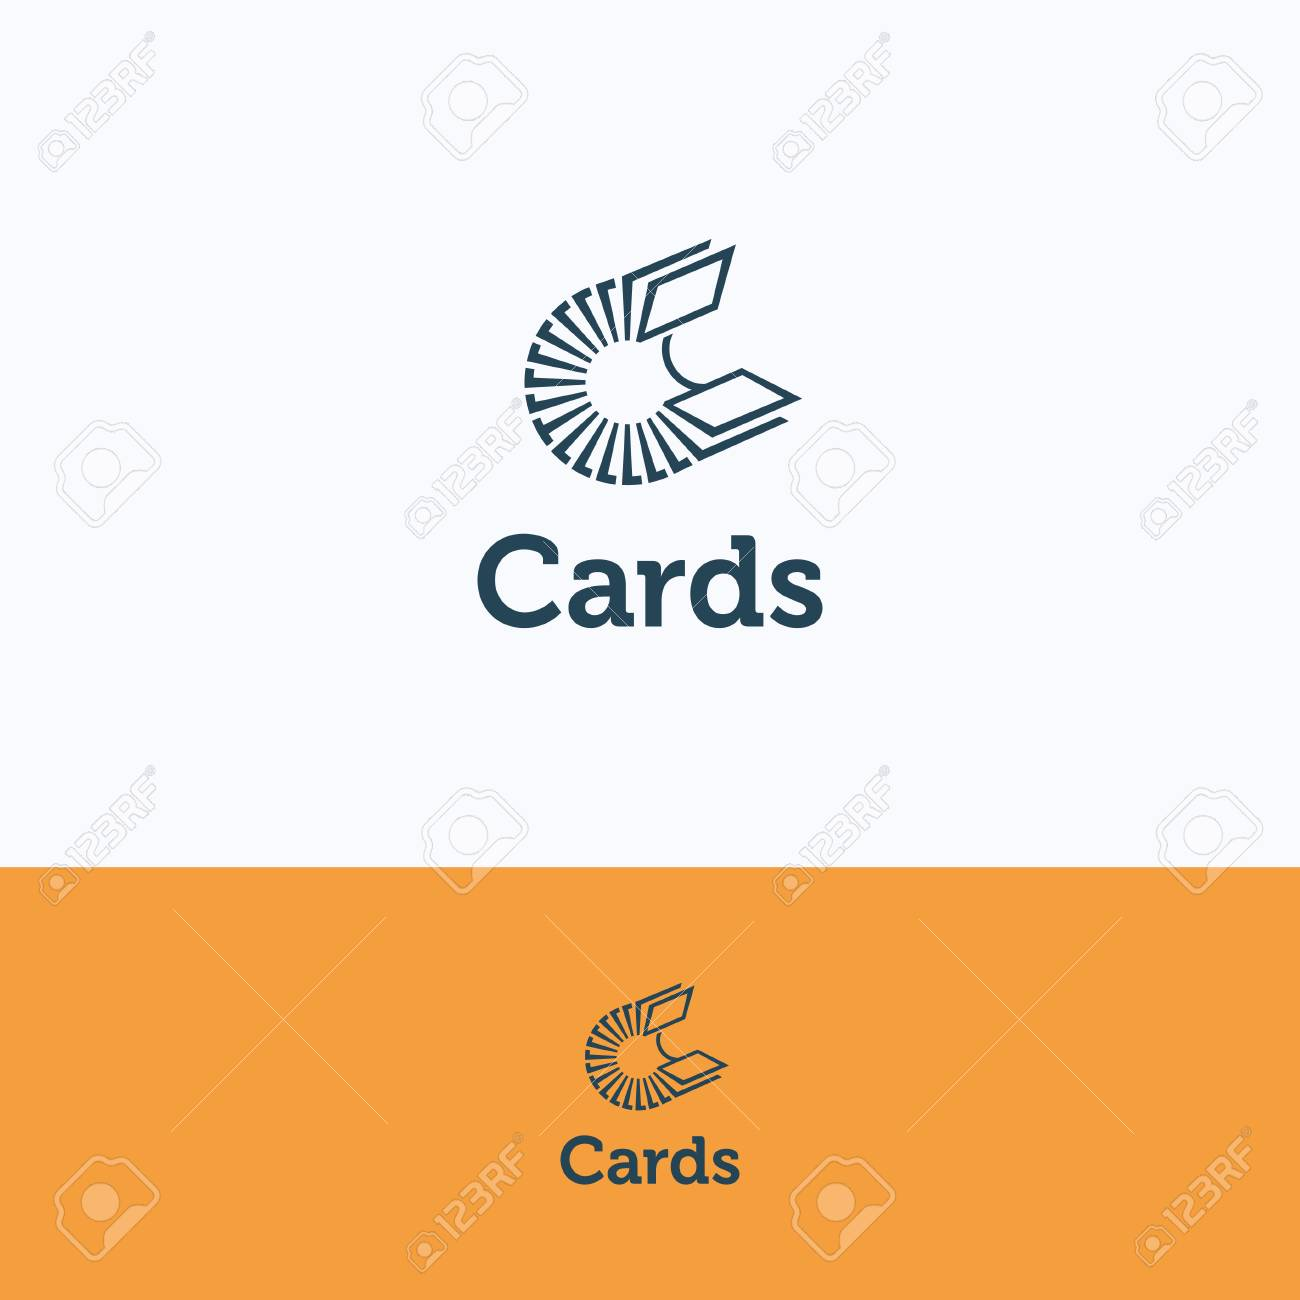 C Letter Alphabet Cards Card Business File-cabinet Card-file ...